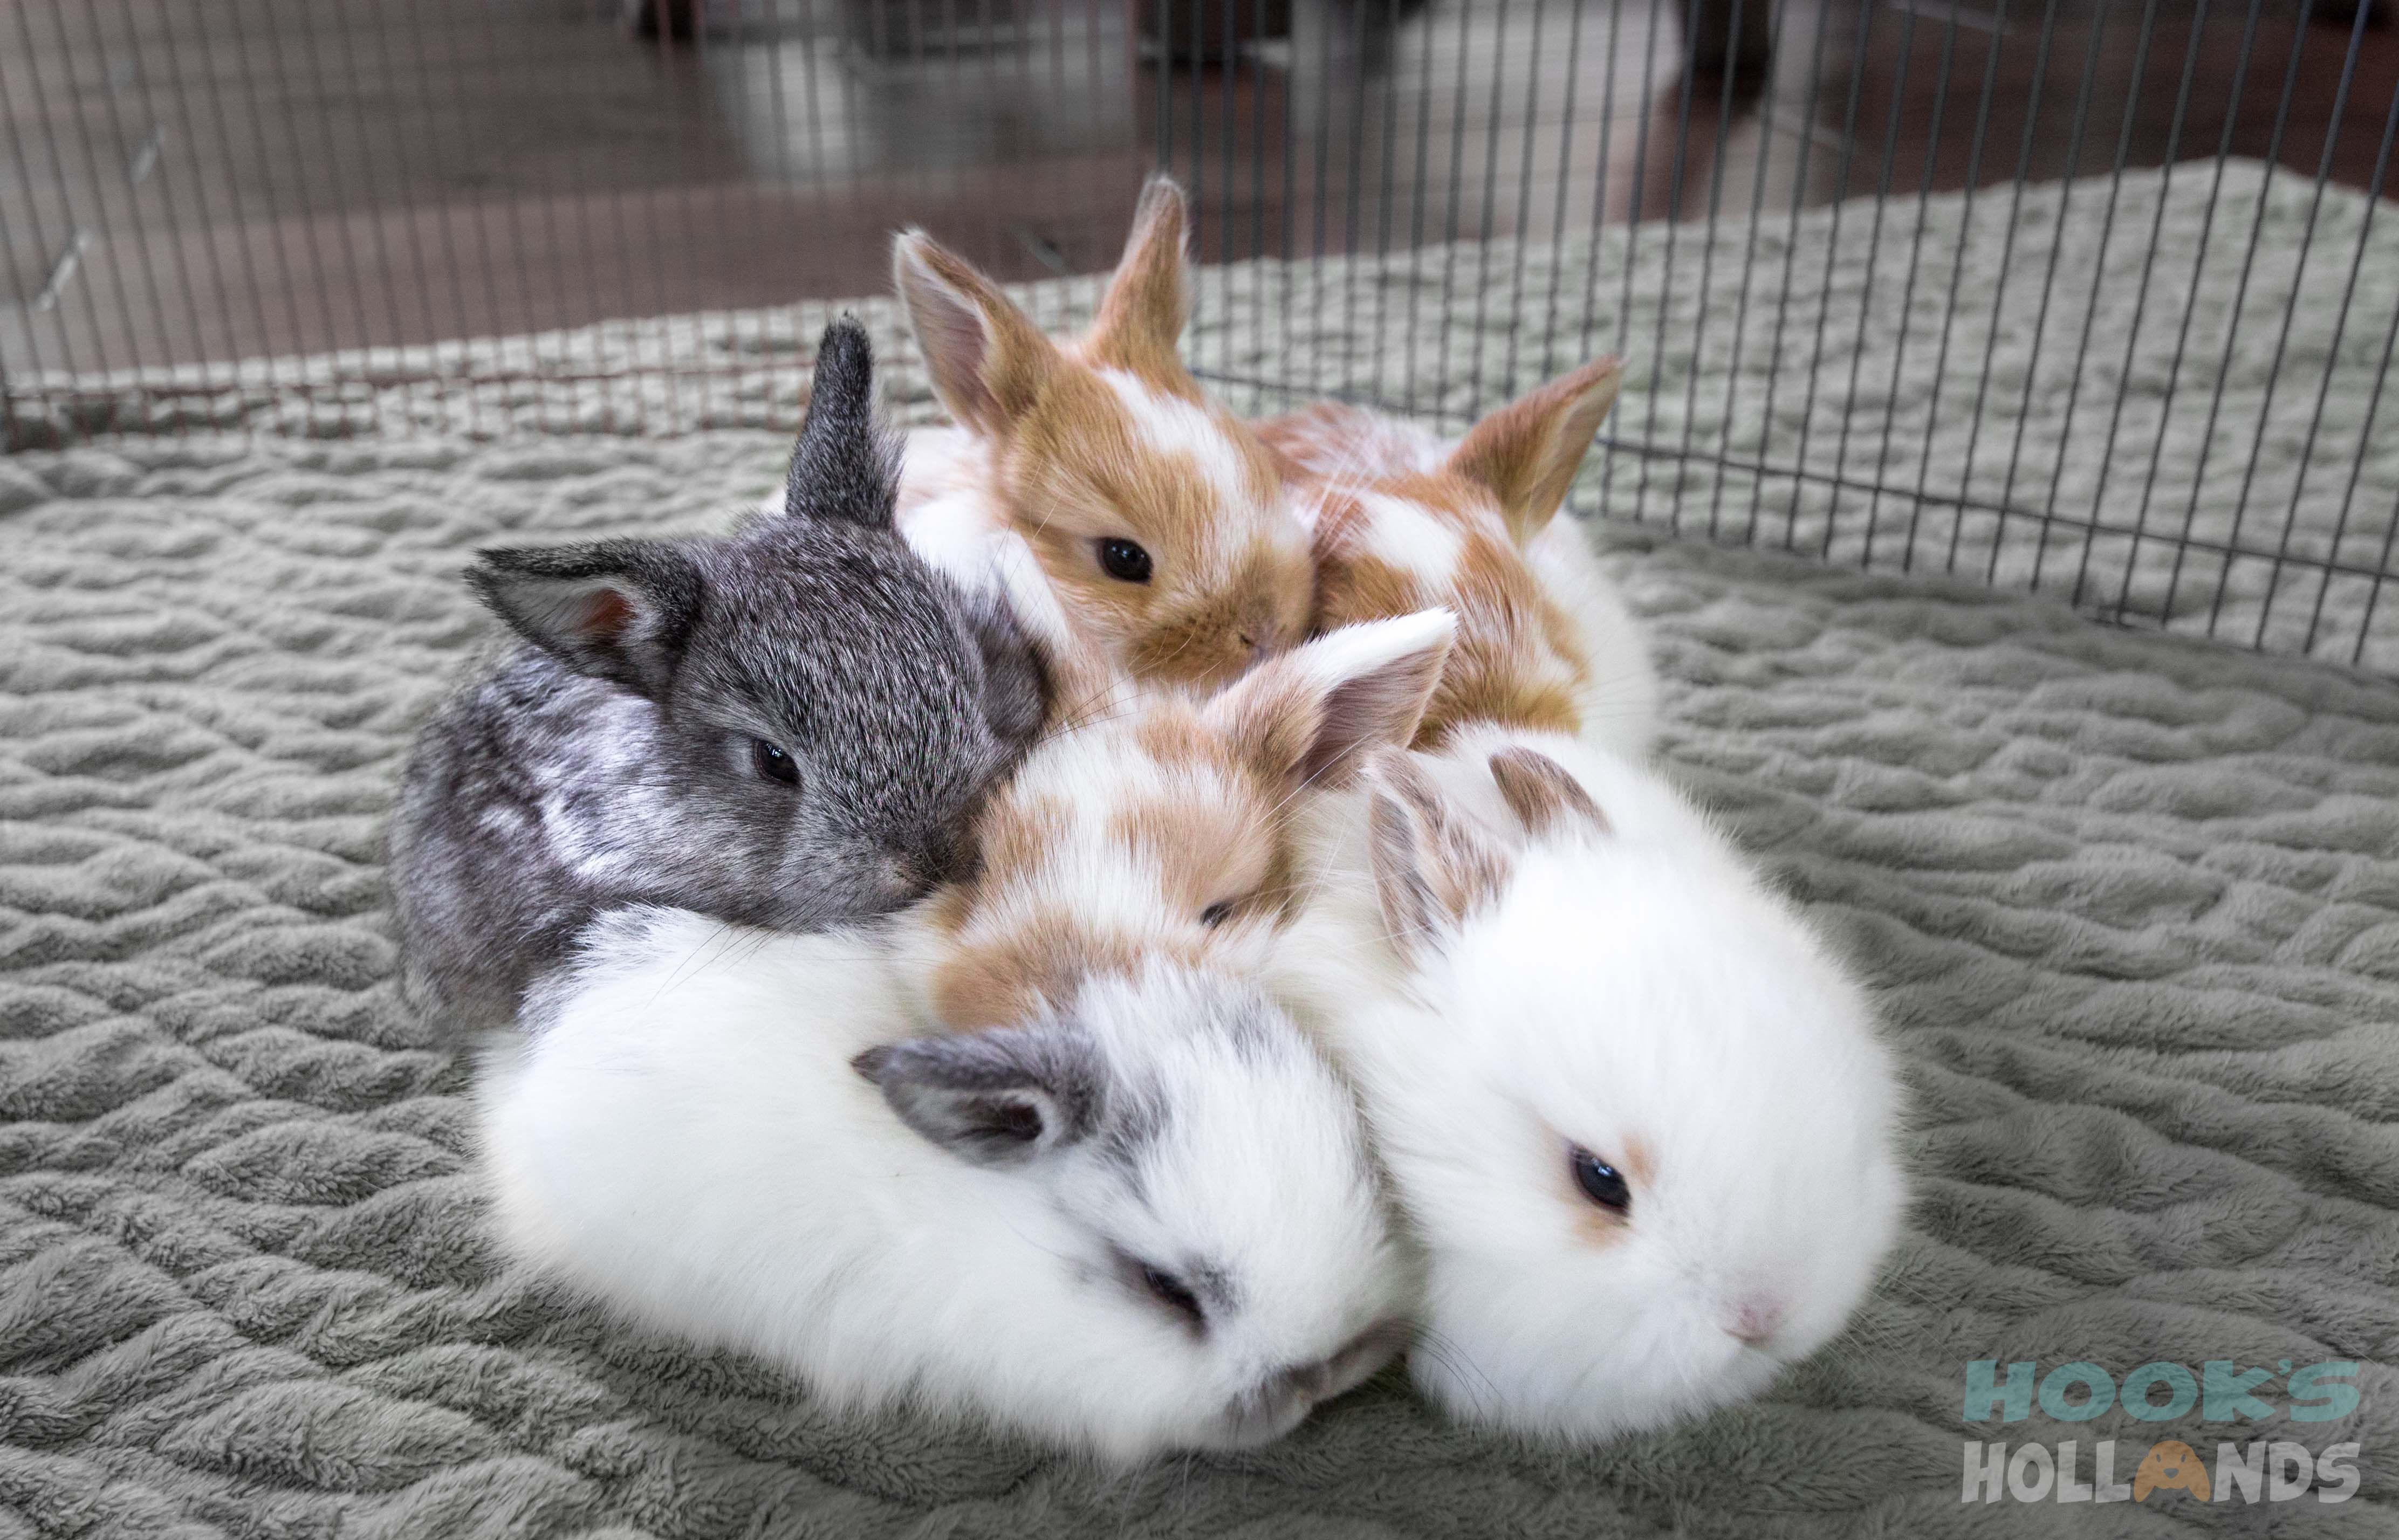 Holland lop baby bunnies, 3 weeks old. From Hook's